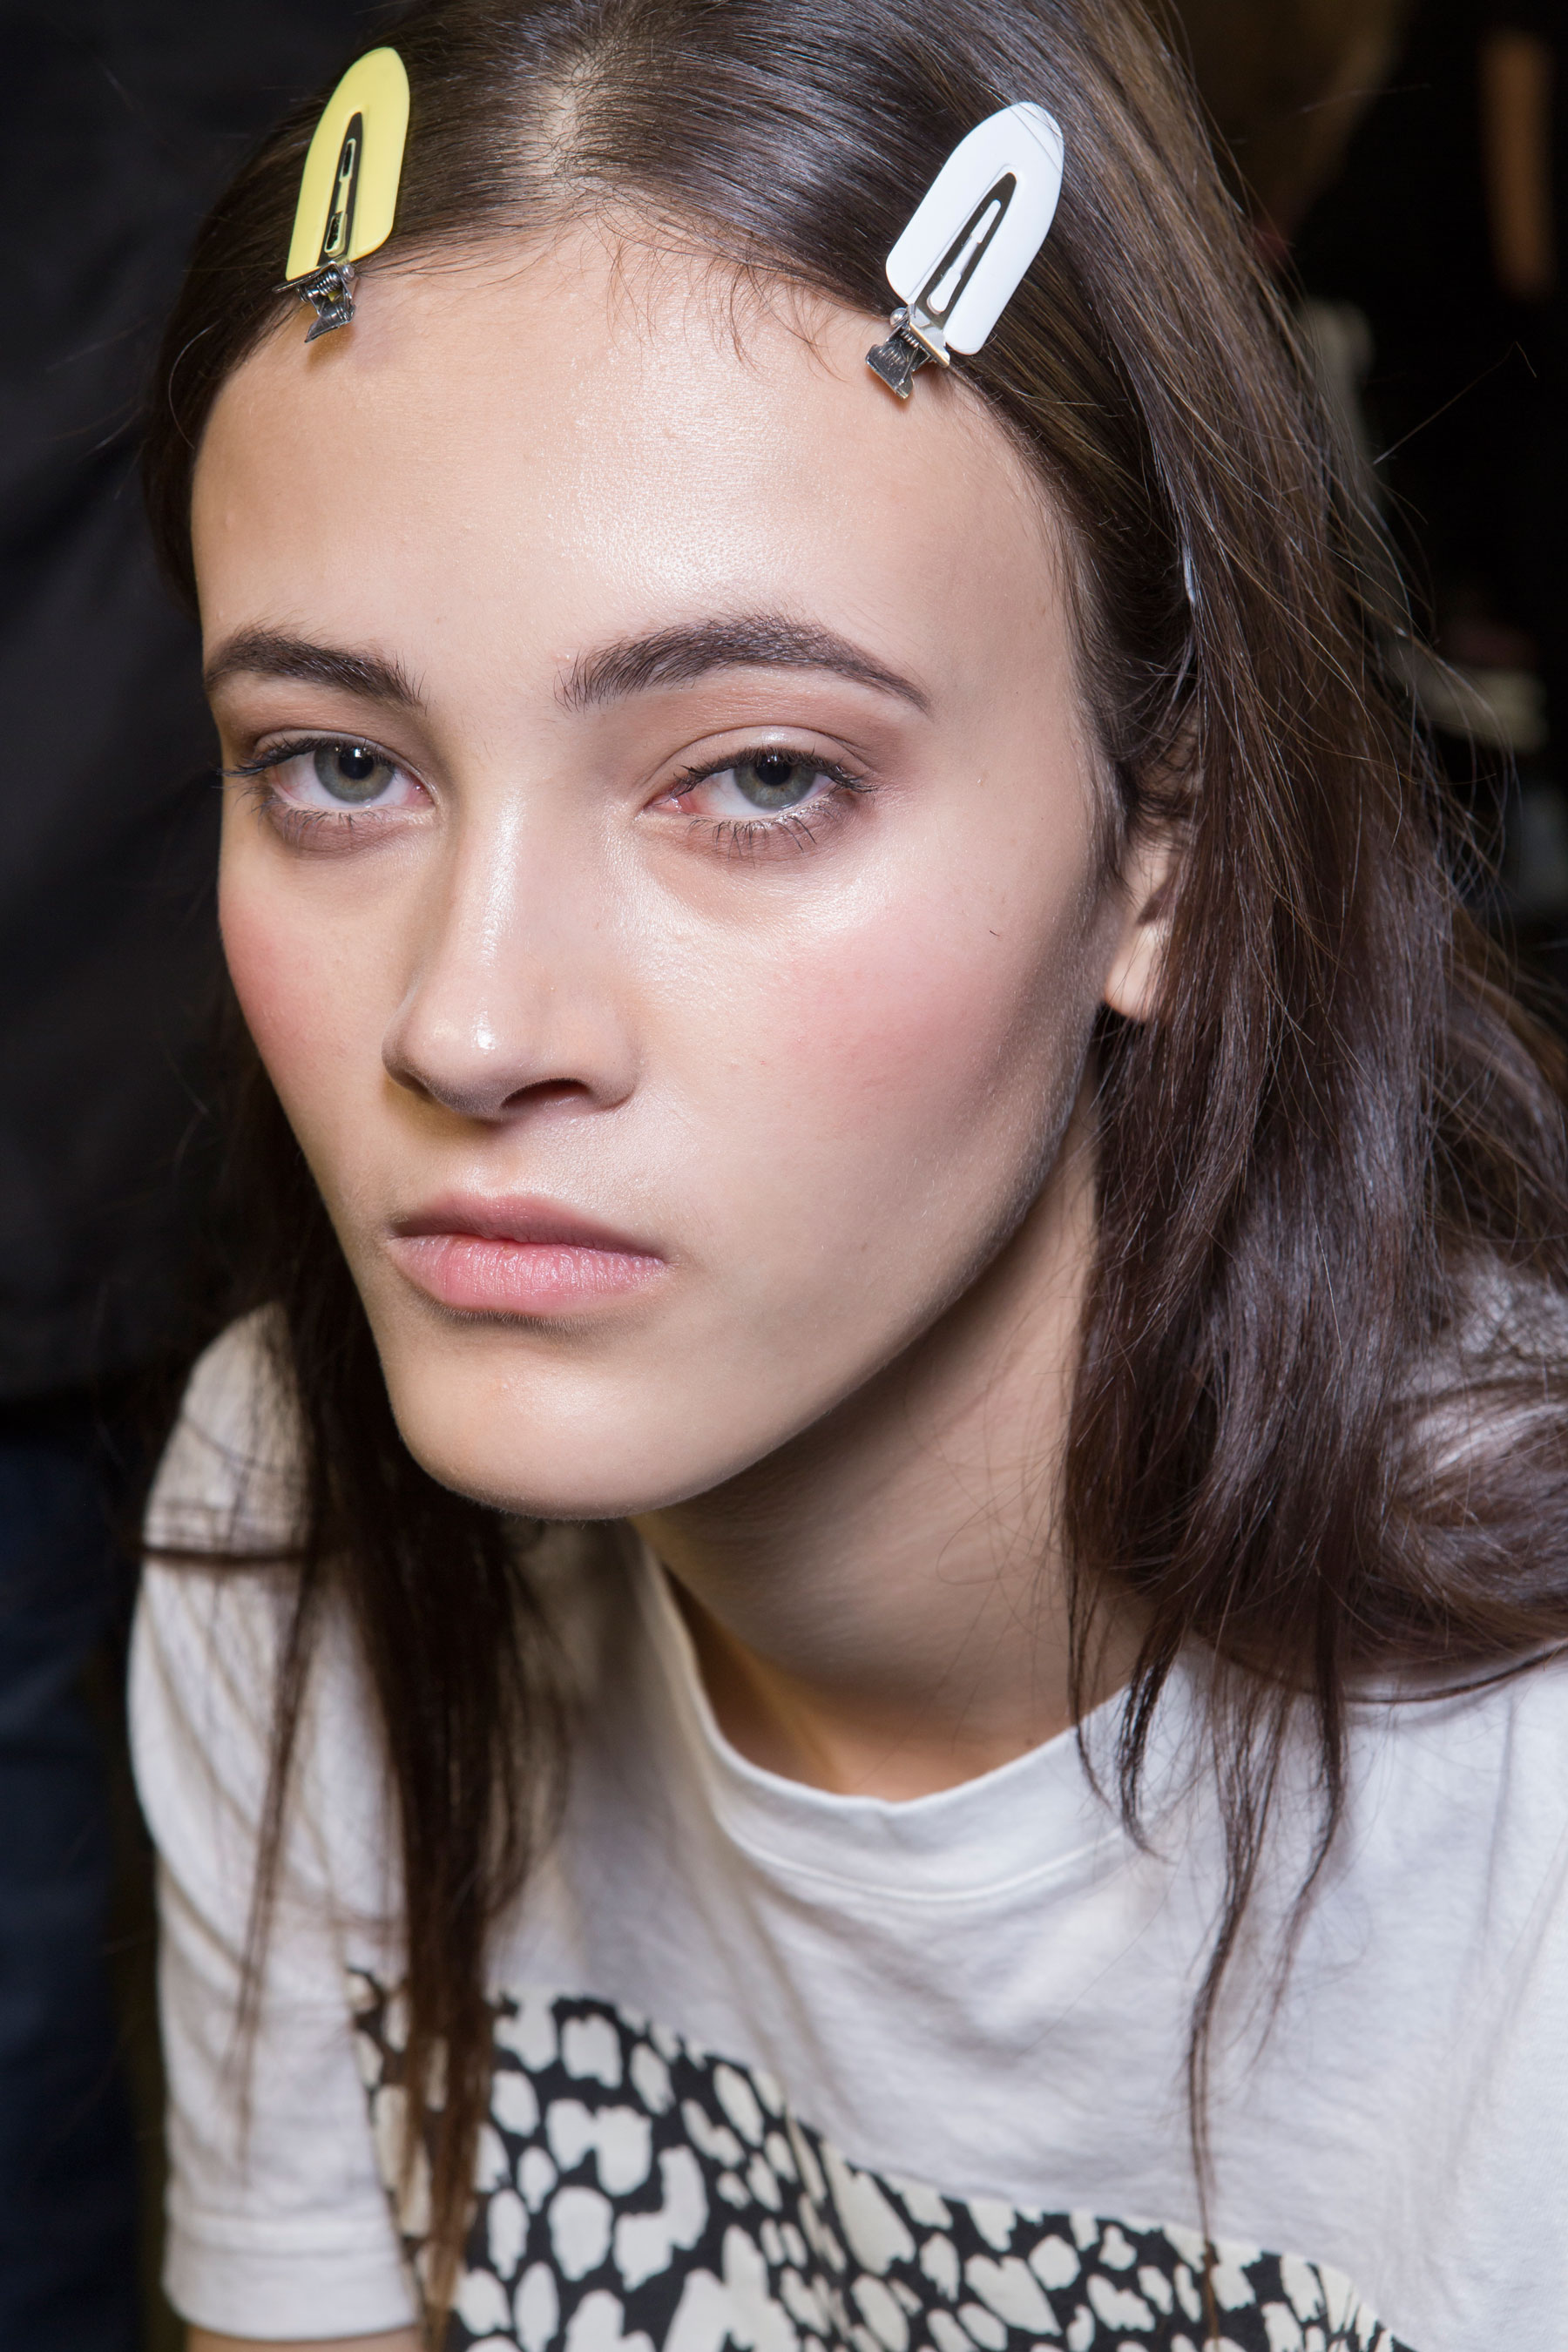 versace-backstage-beauty-spring-2016-fashion-show-the-impression-044